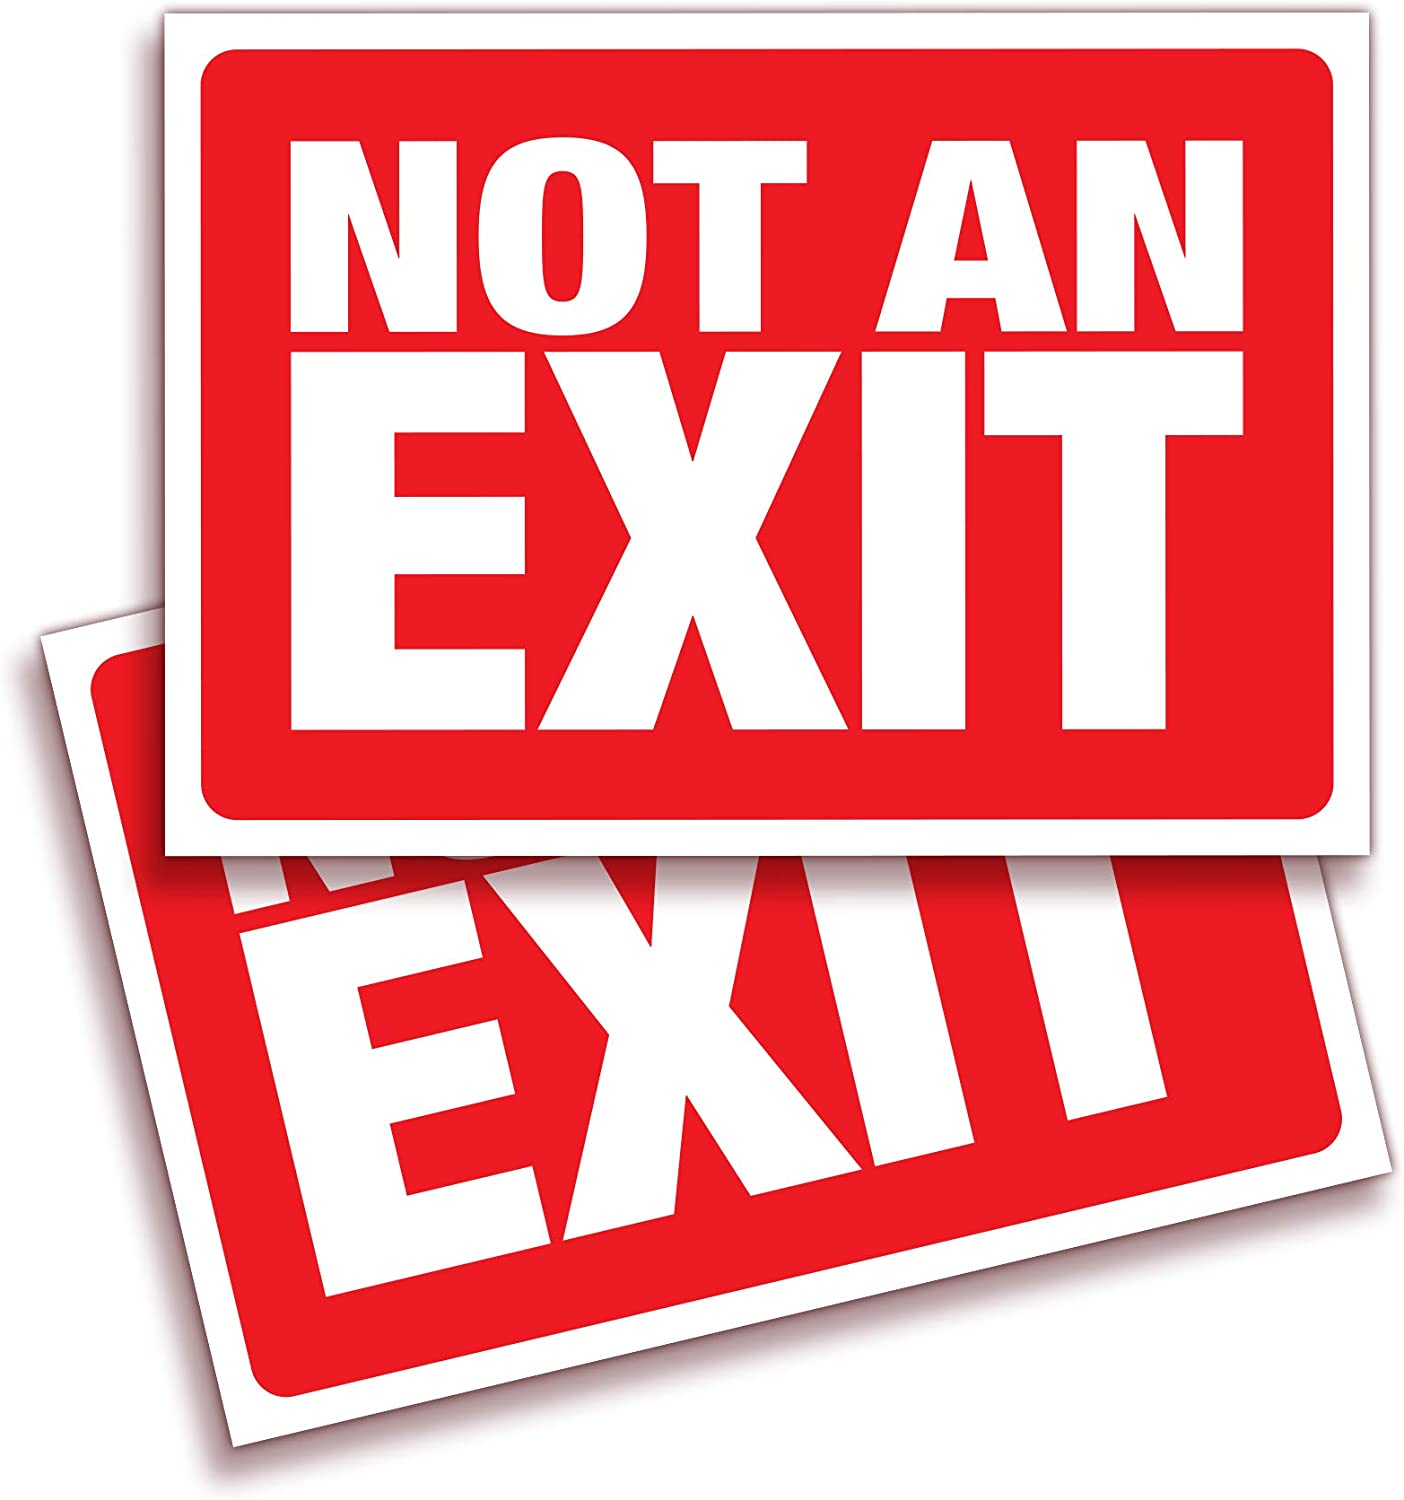 Not An Exit Signs Stickers, for Office, Buildings & Workplace – 2 Pack 10x7 Inch – Premium Self-Adhesive Vinyl, Laminated for Ultimate UV, Weather, Scratch, Water and Fade Resistance, Indoor & Outdoor